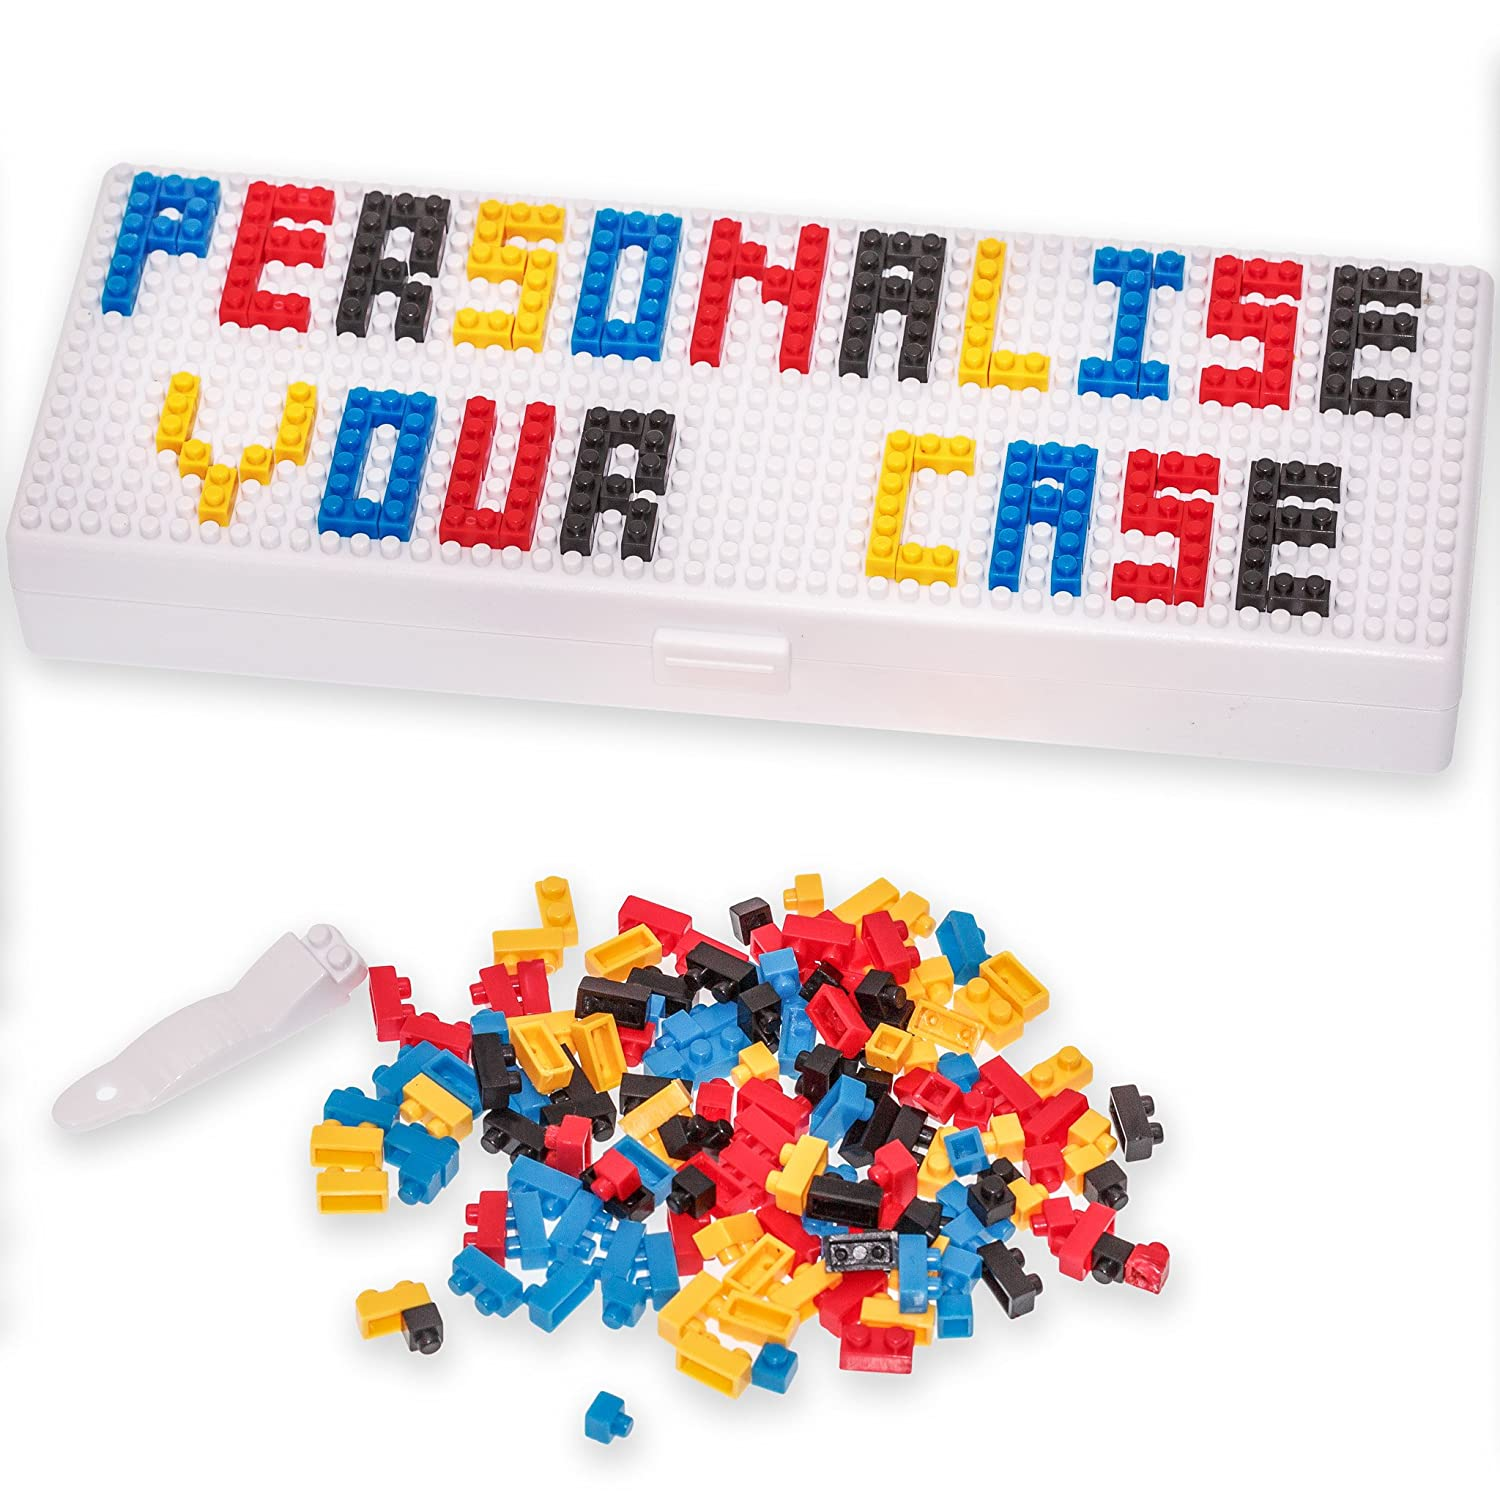 Pencil Case - Personalise box with micro bricks - for Boys Girls and Adults use for School or Work - Microbrix Echo Three